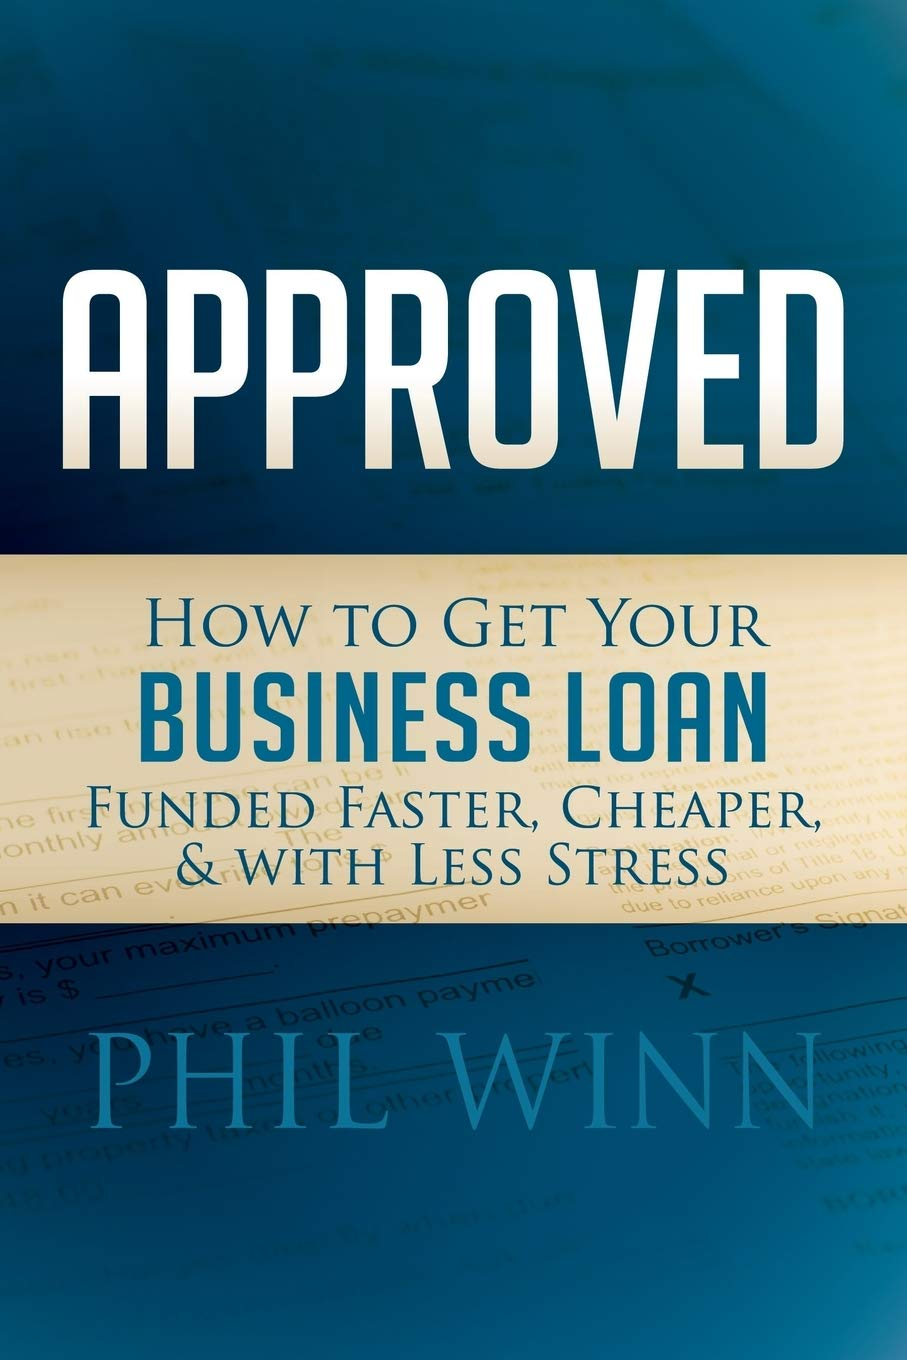 Download Approved: How To Get Your Business Loan Funded Faster, Cheaper & With Less Stress 